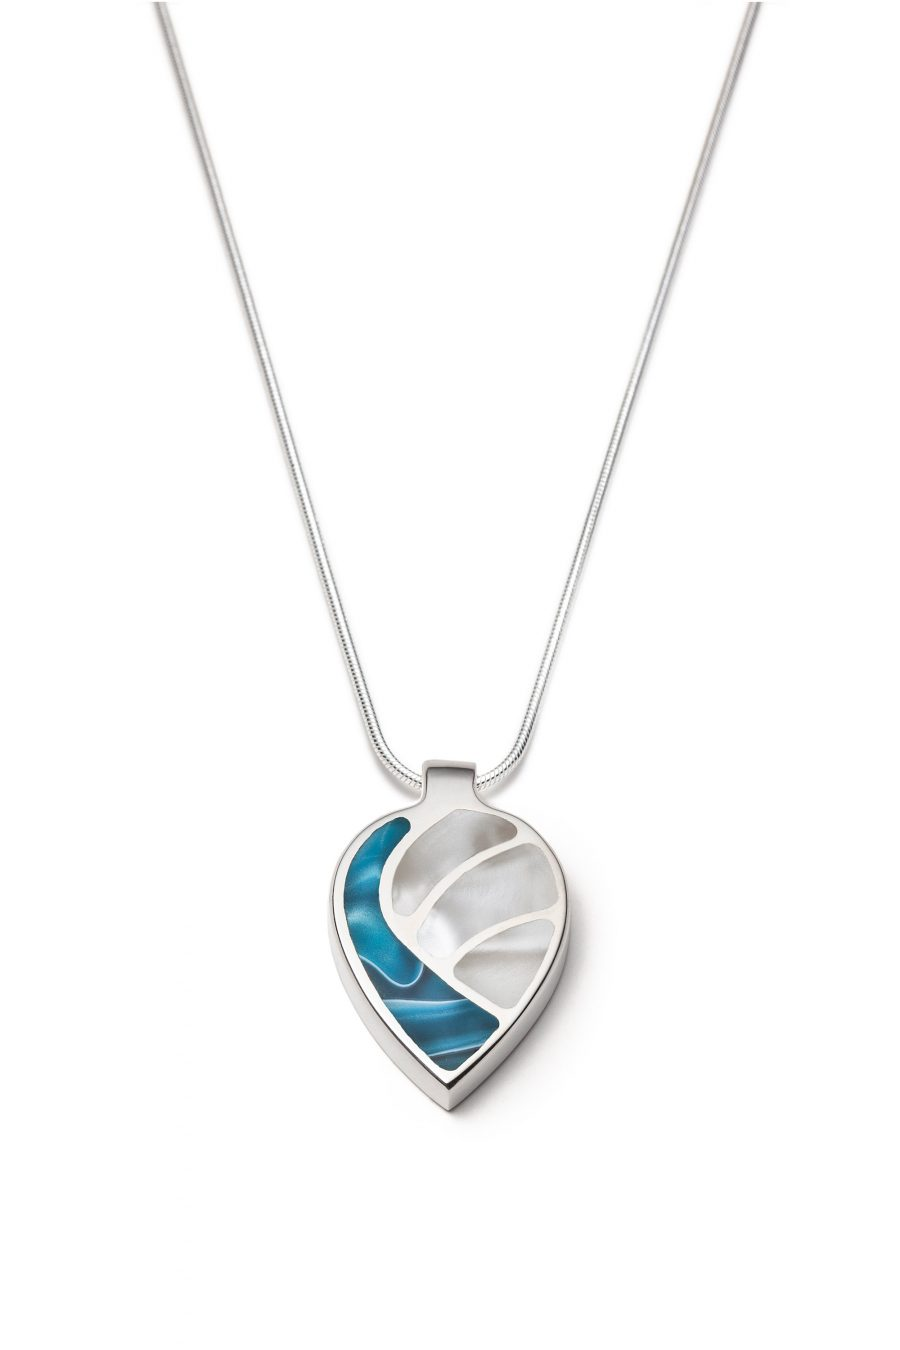 Colourful white and blue silver necklace